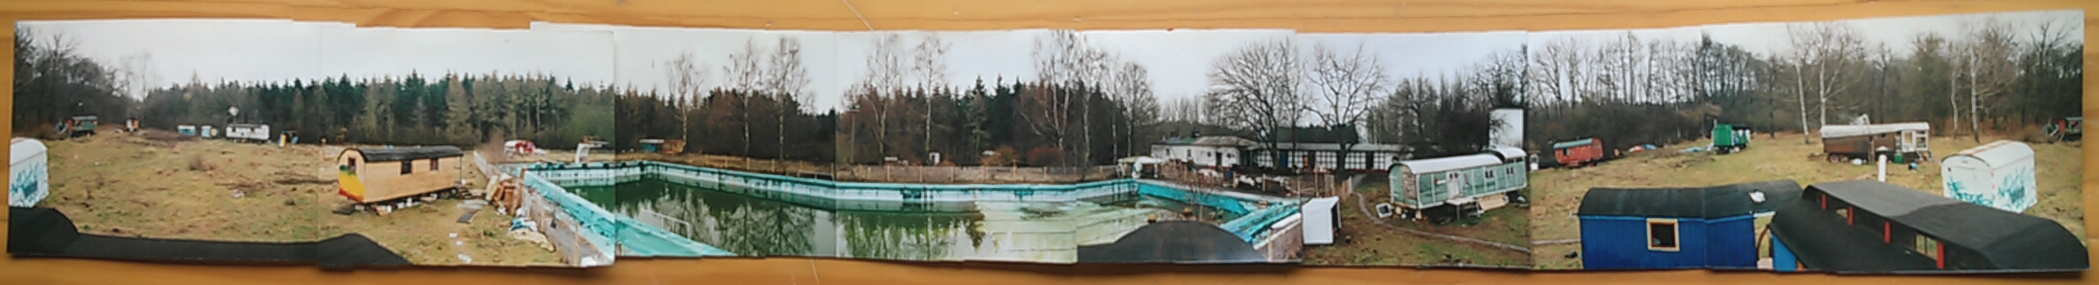 2000-01-xx-Panorama-SWIM-2